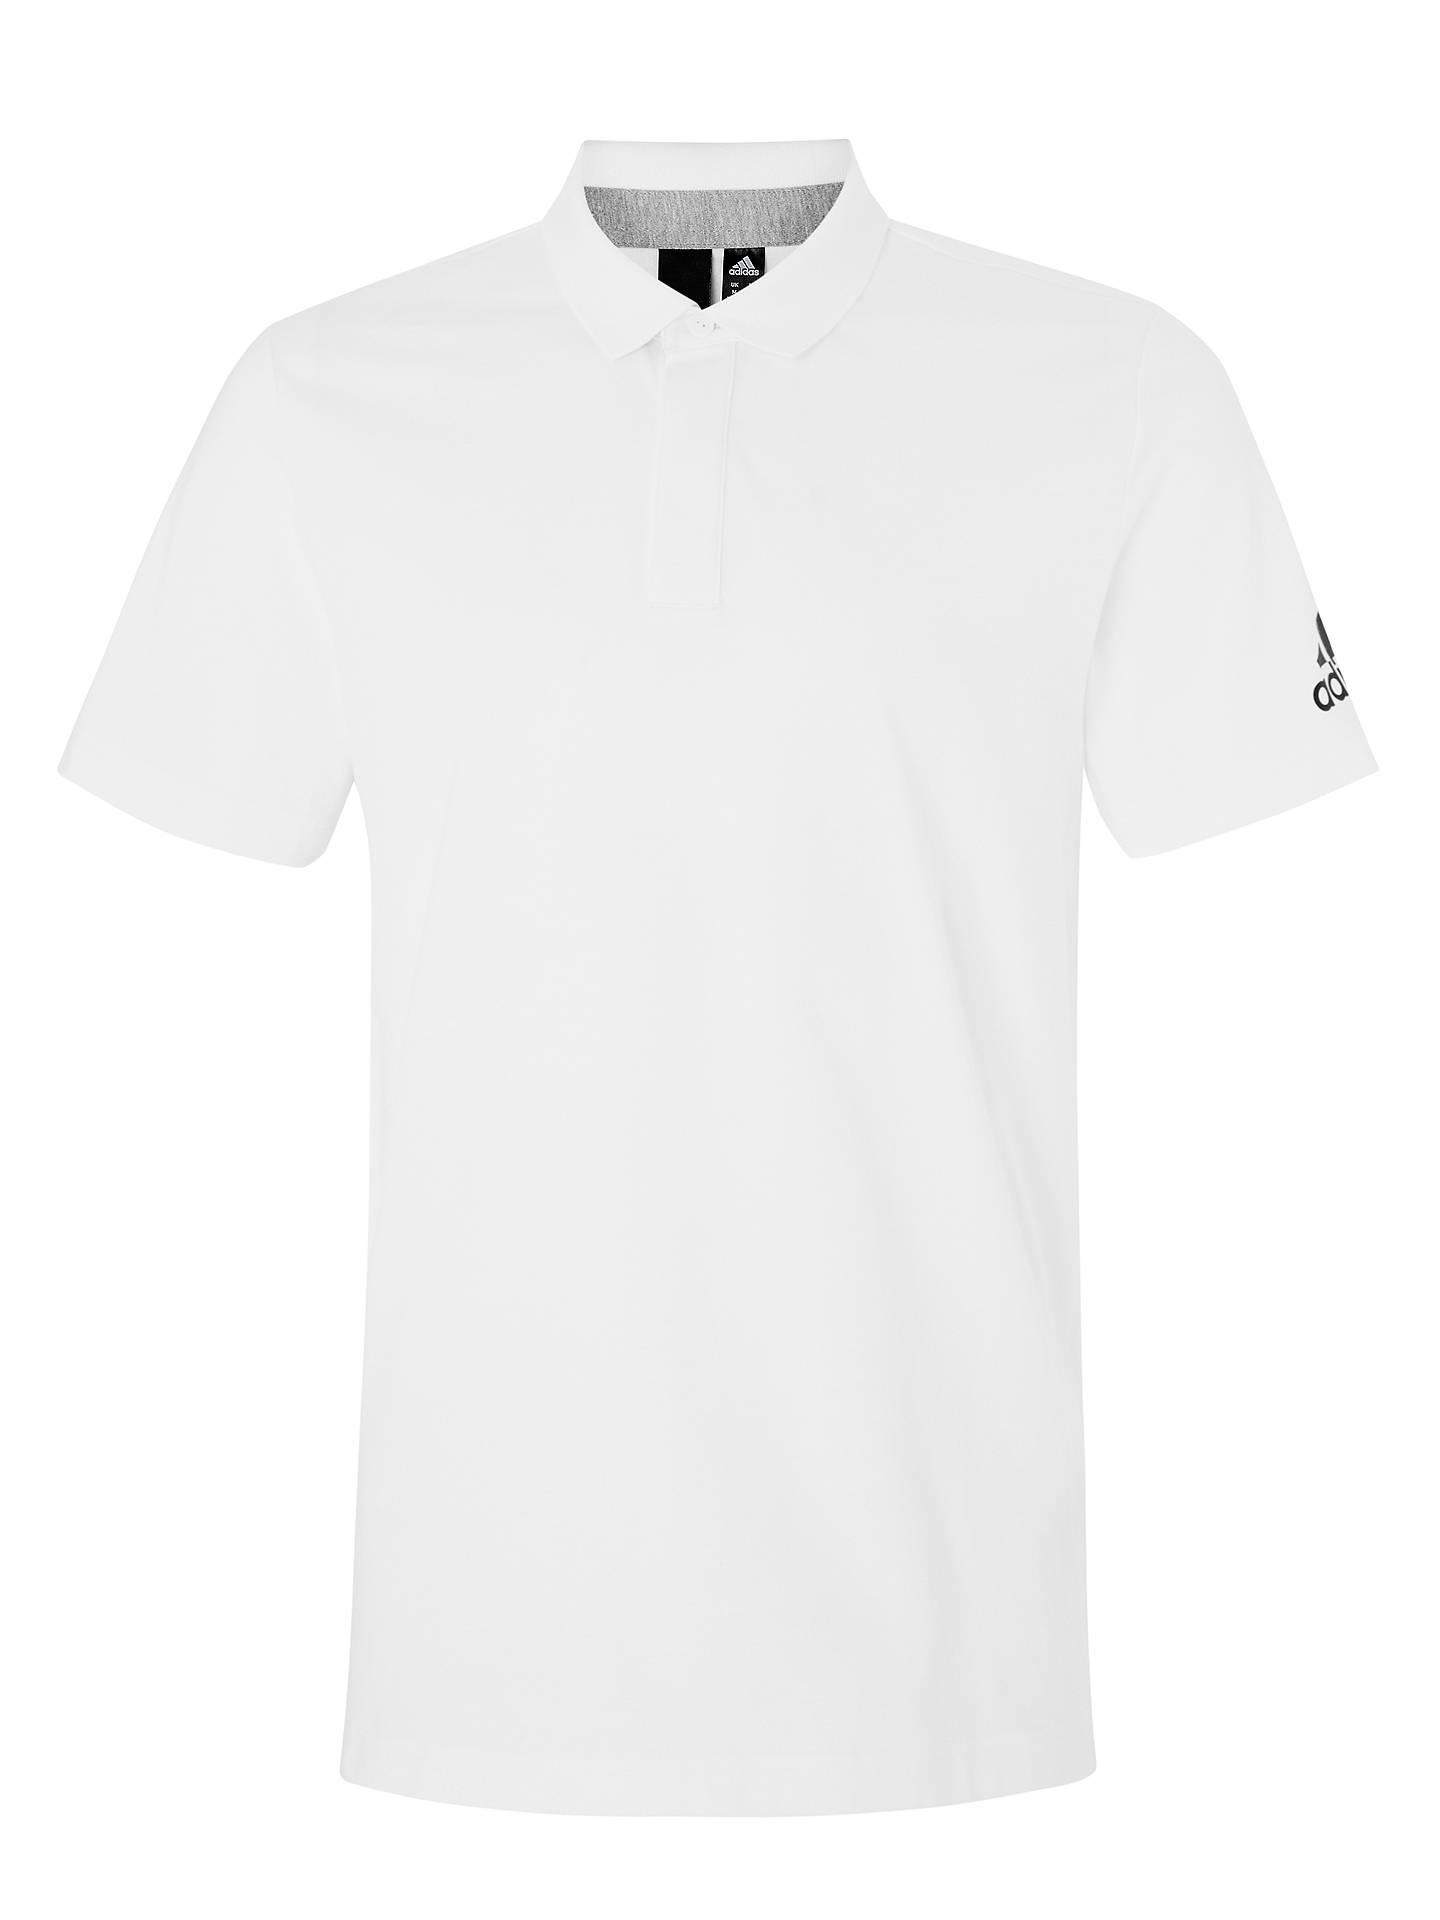 2512ef3c ... Buy adidas Must Haves Plain Polo Shirt, White, M Online at  johnlewis.com ...